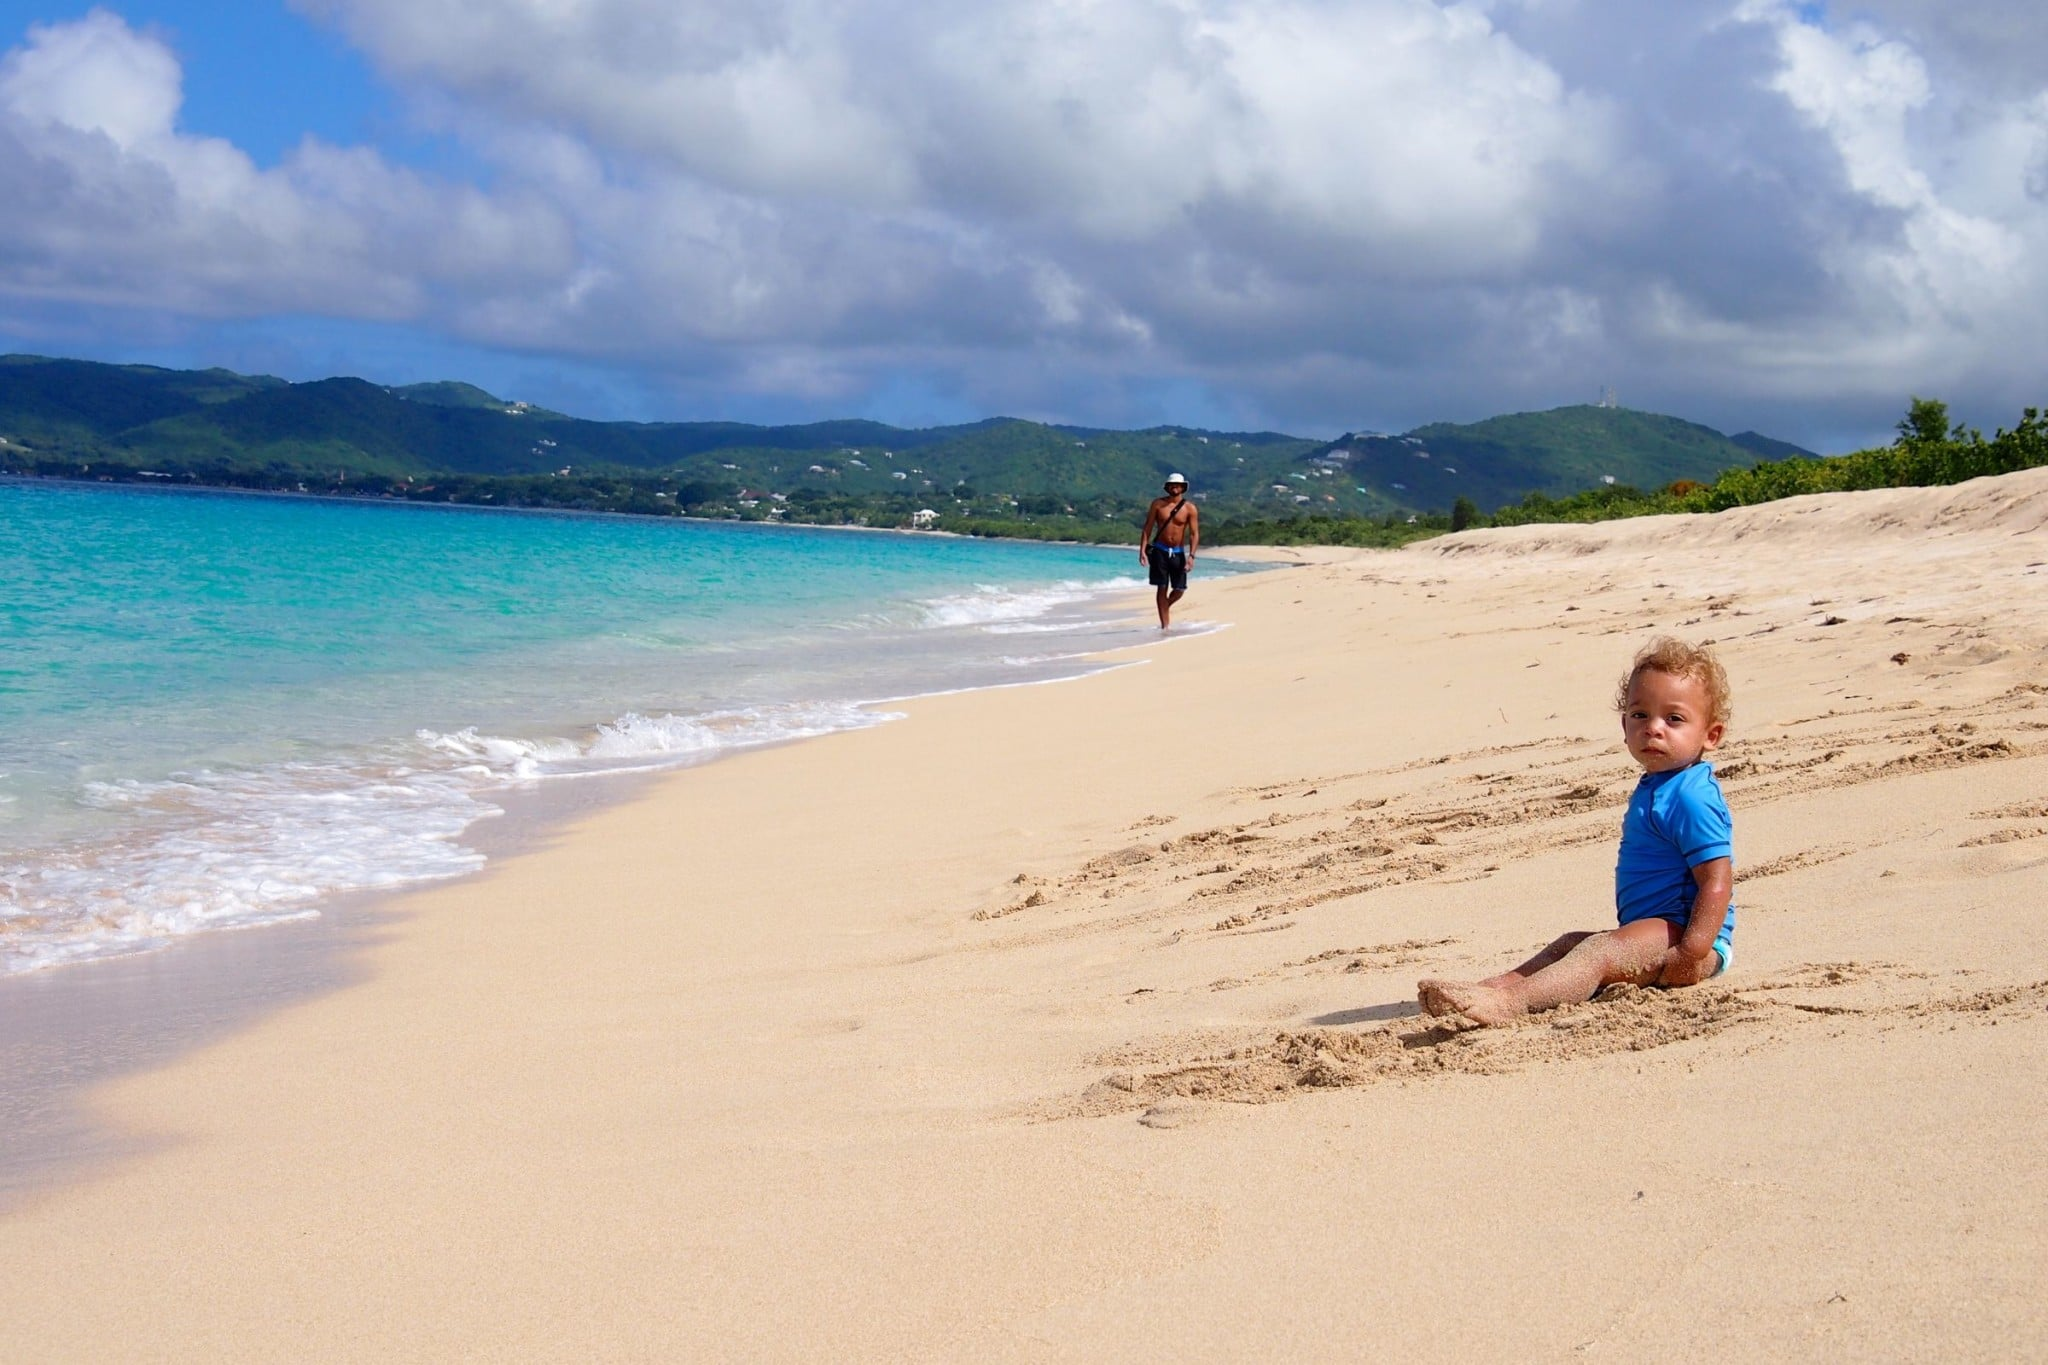 Beachin' It for Father's Day on St. Croix: Wish You Were Here